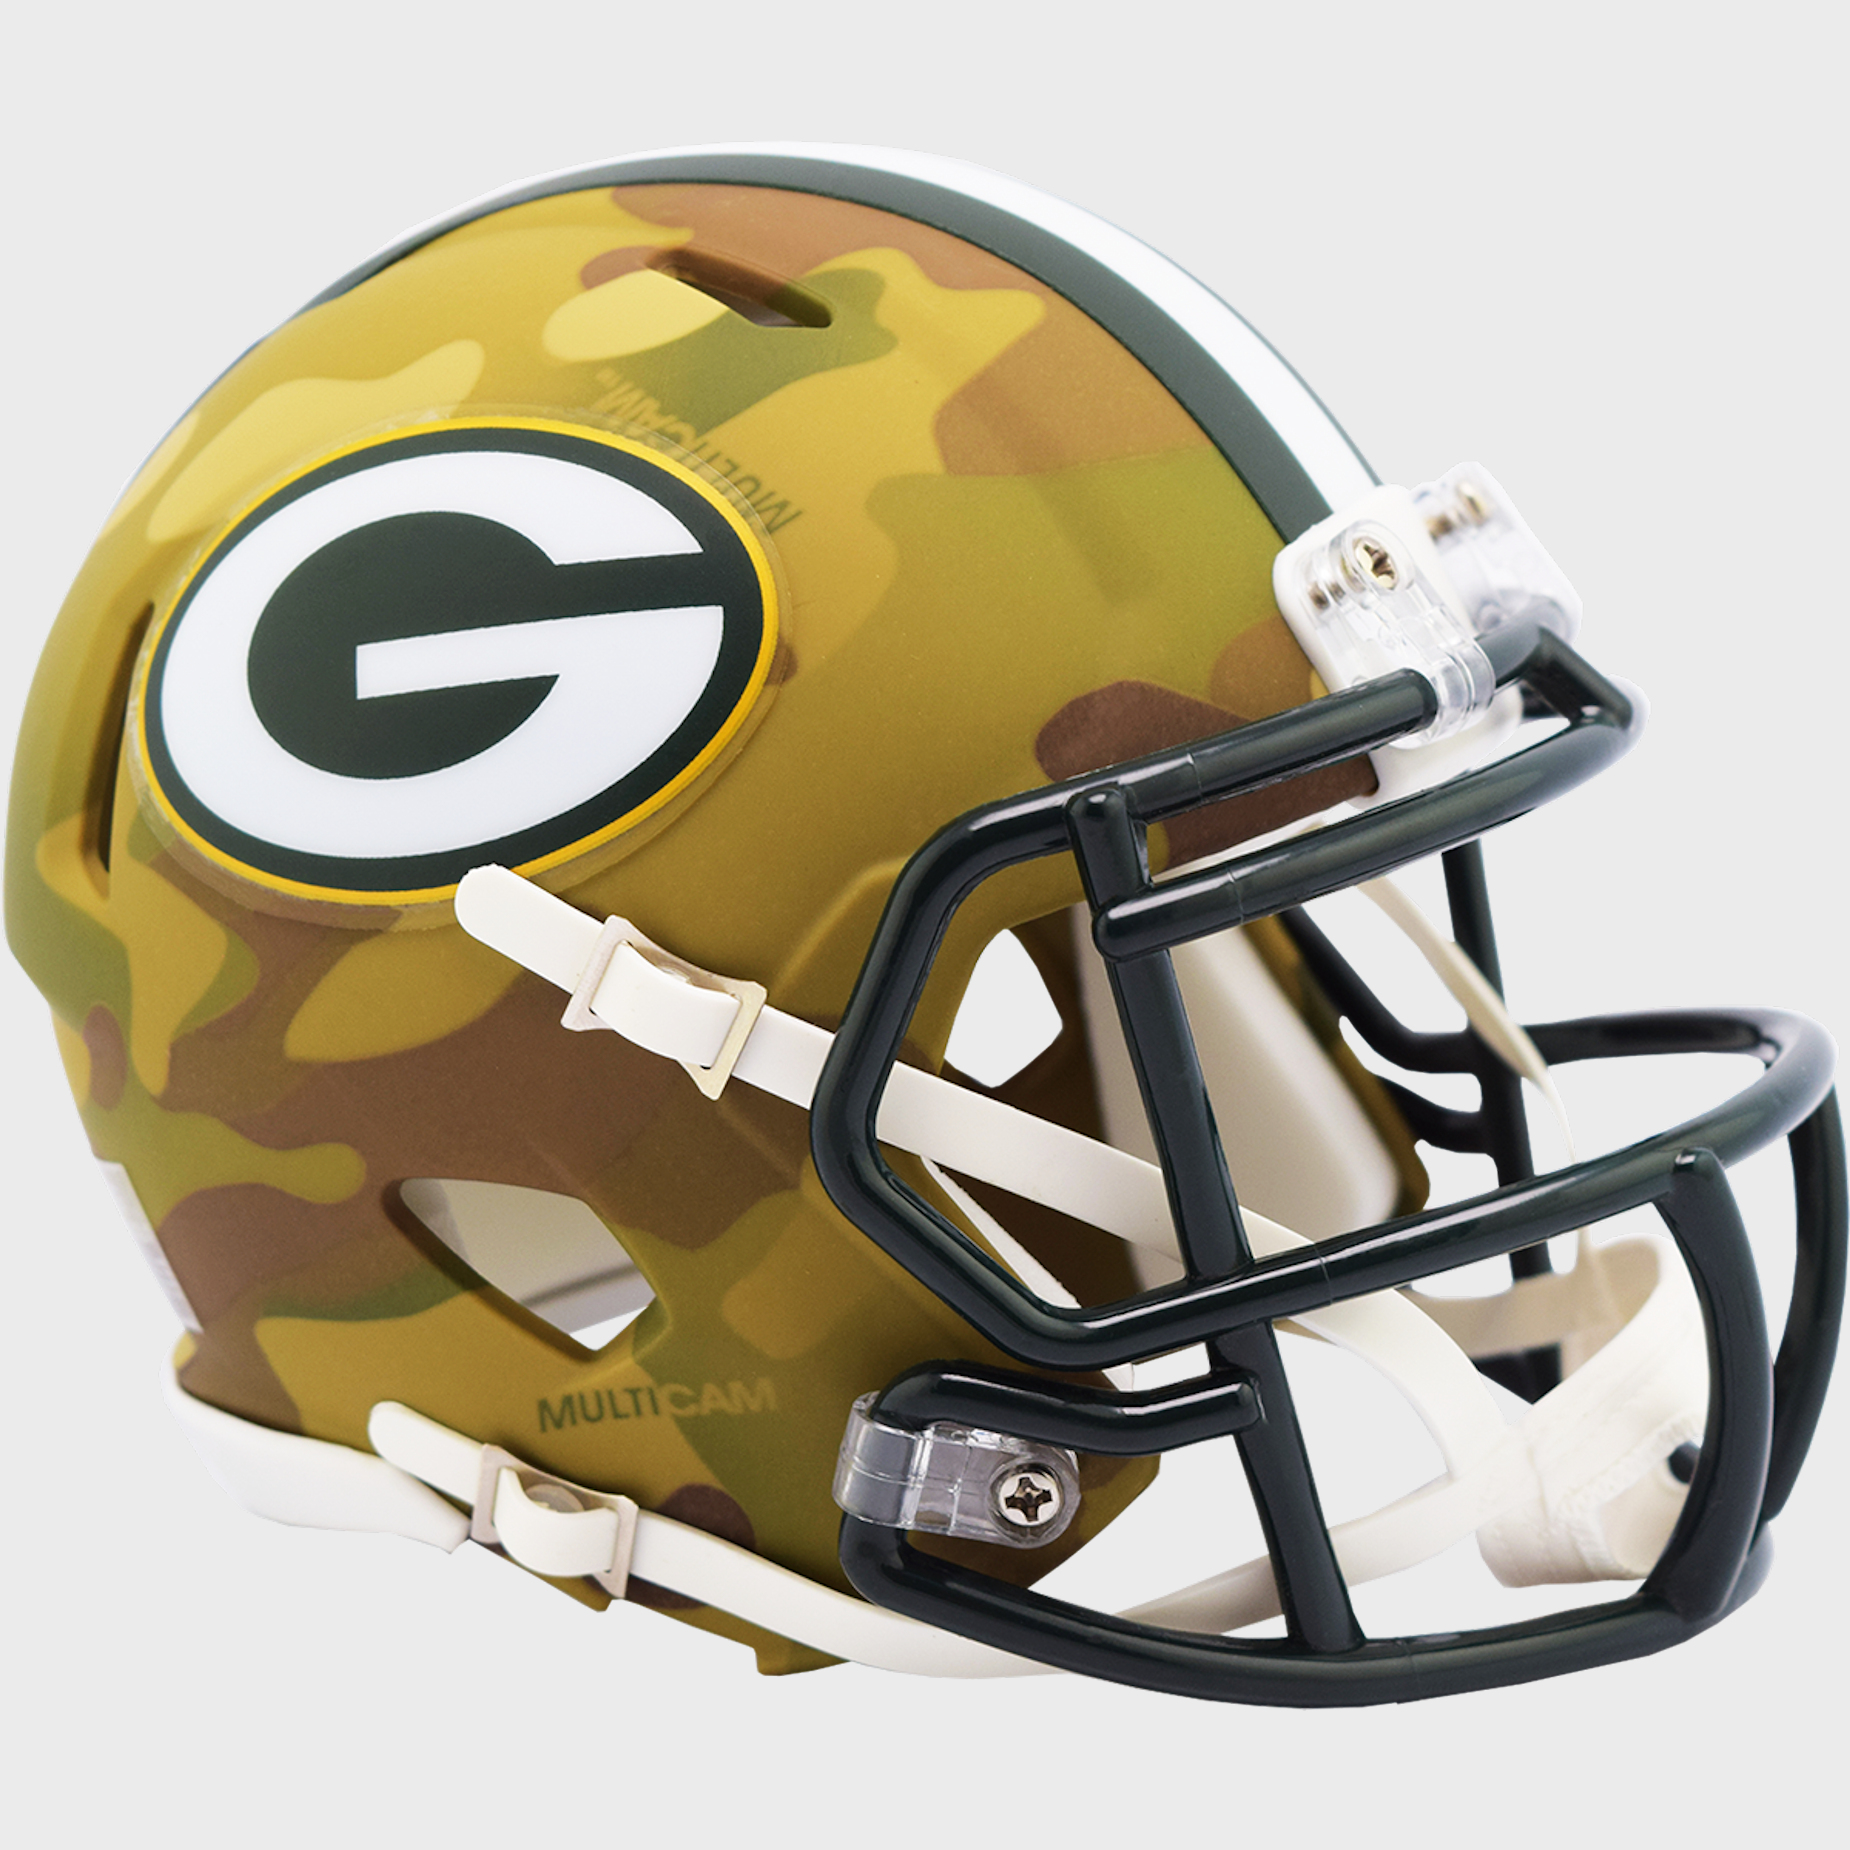 Green Bay Packers NFL Mini Speed Football Helmet <B>CAMO</B>